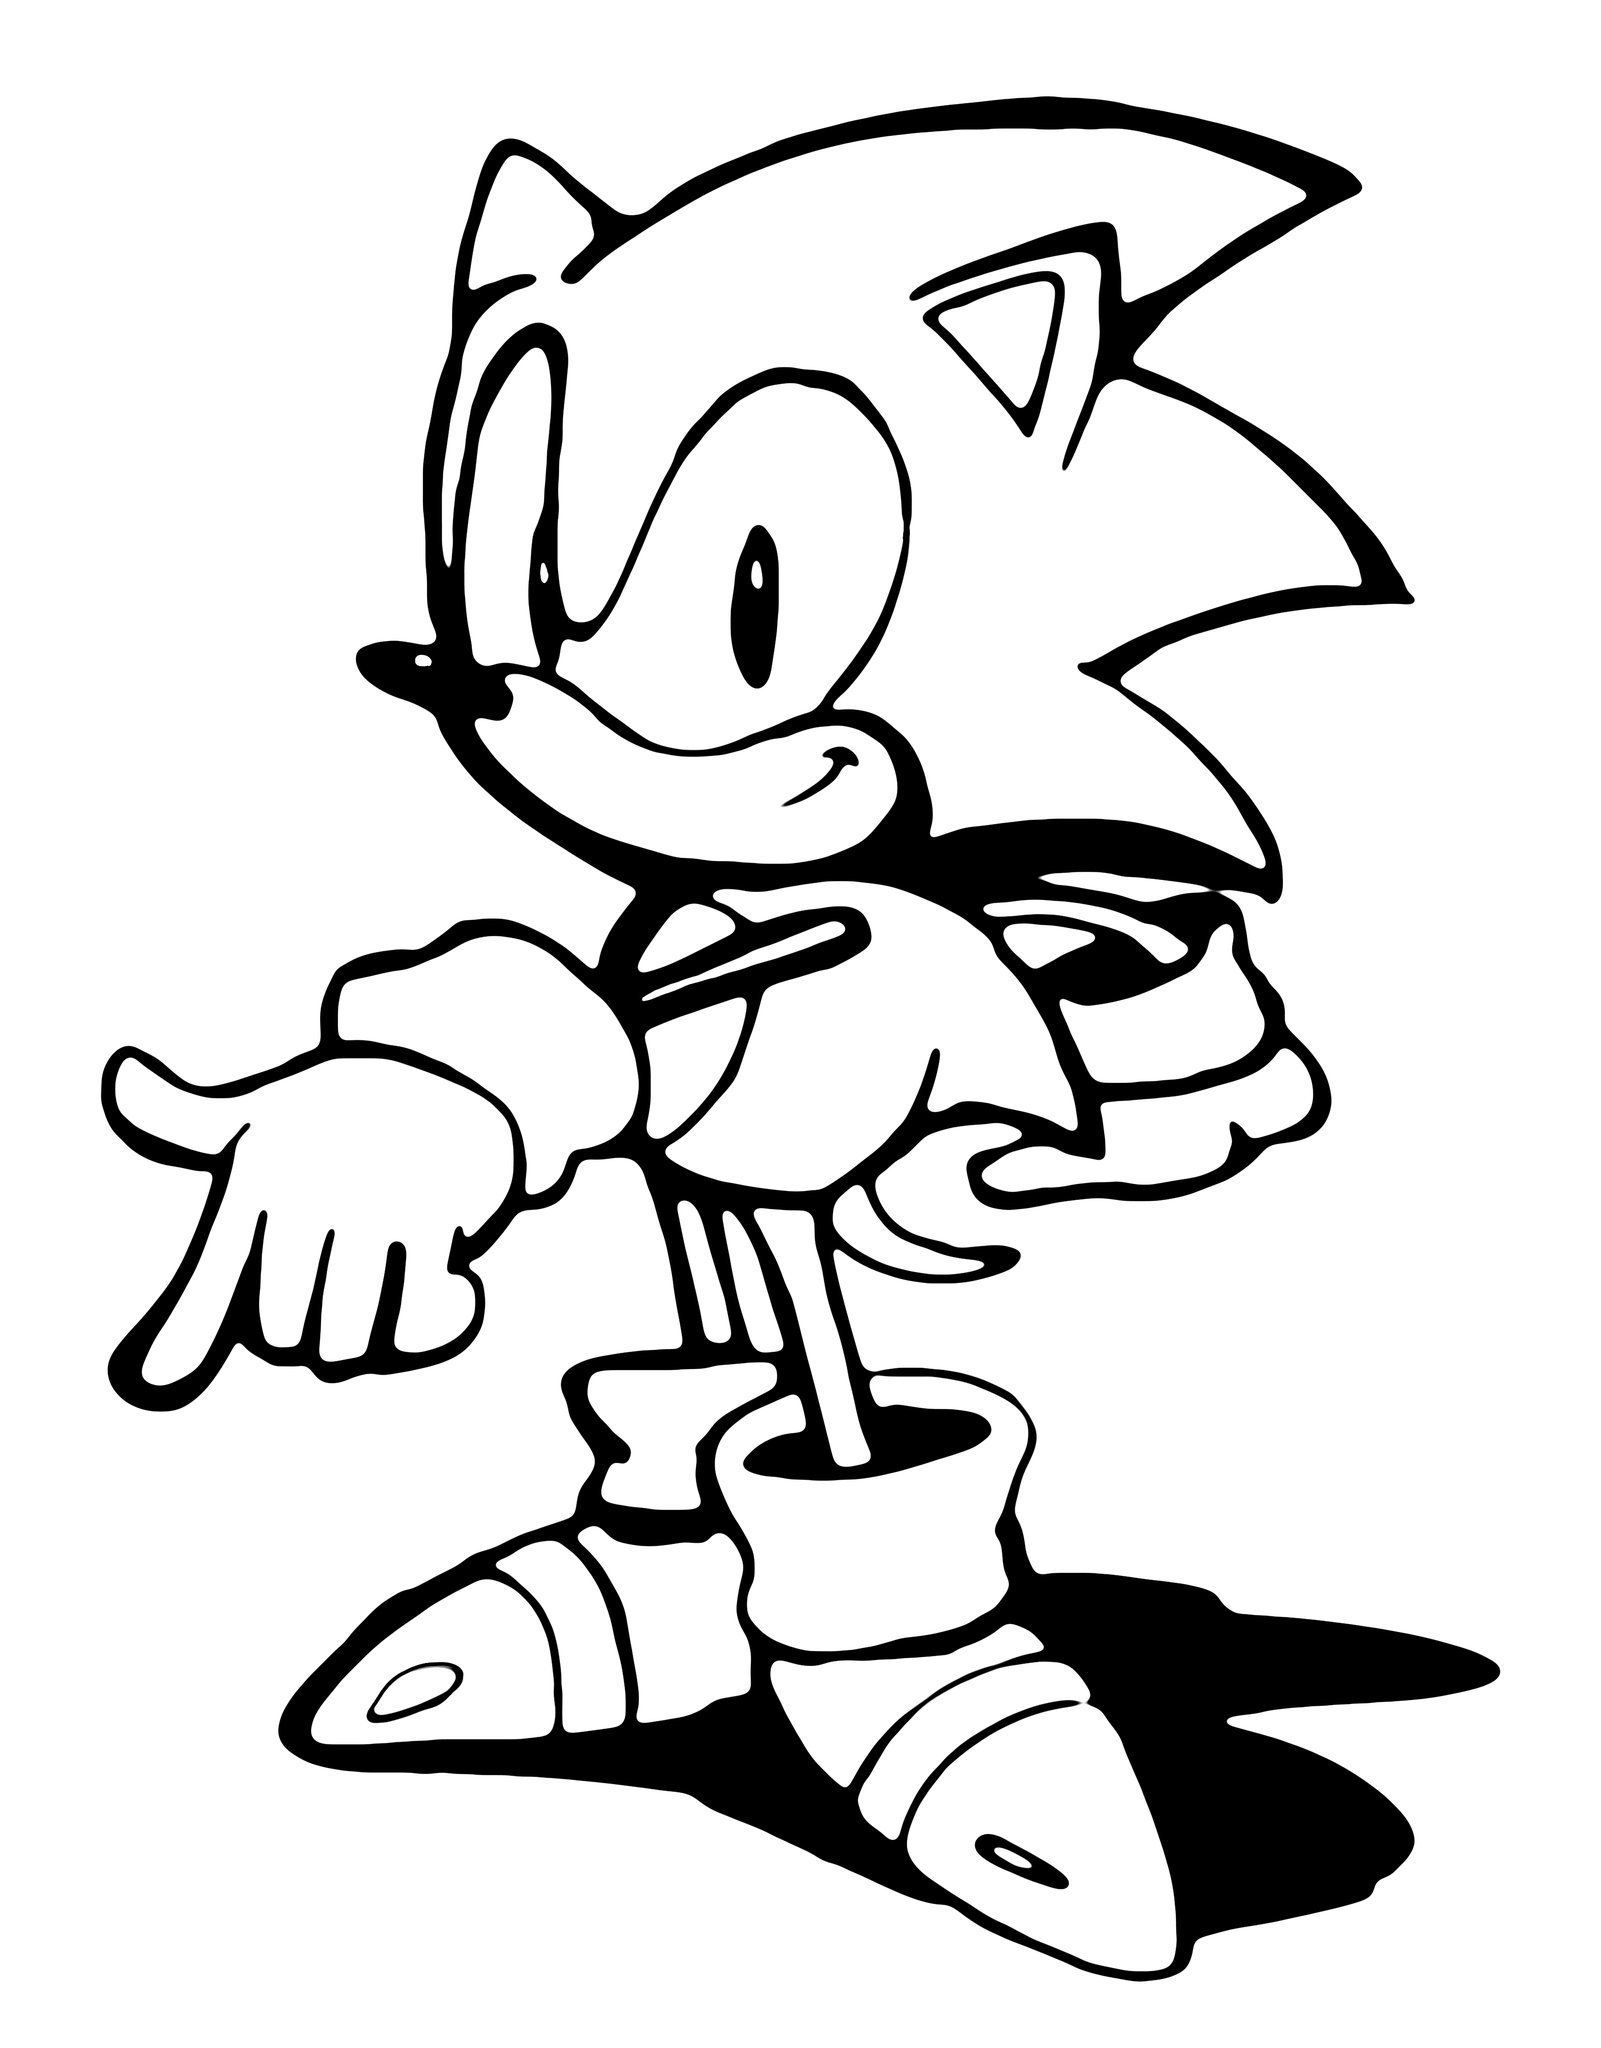 Pin By Kane On The Sonic Board Sonic Art Classic Sonic Concept Art Characters